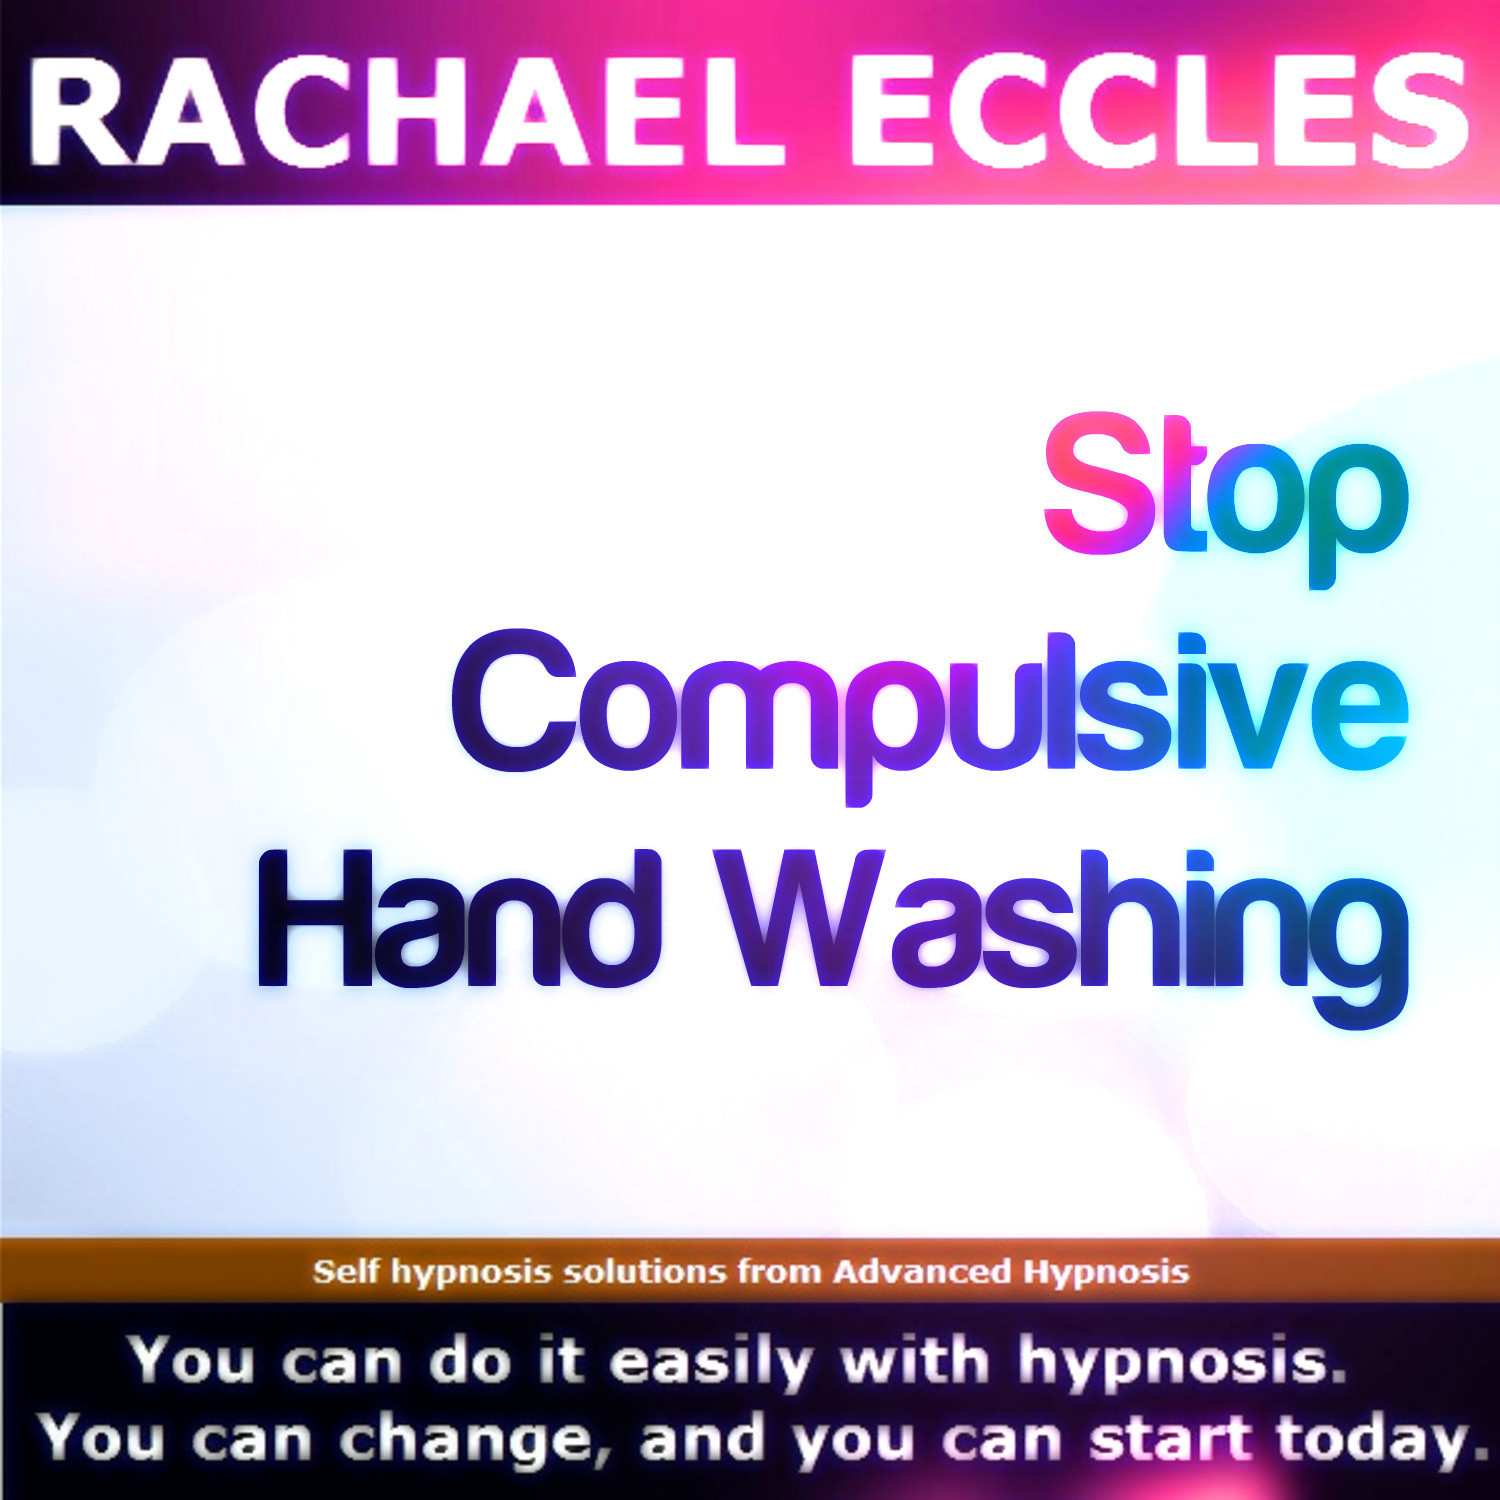 Stop Excessive Compulsive Hand Washing Hypnotherapy Self Hypnosis MP3 Download or CD